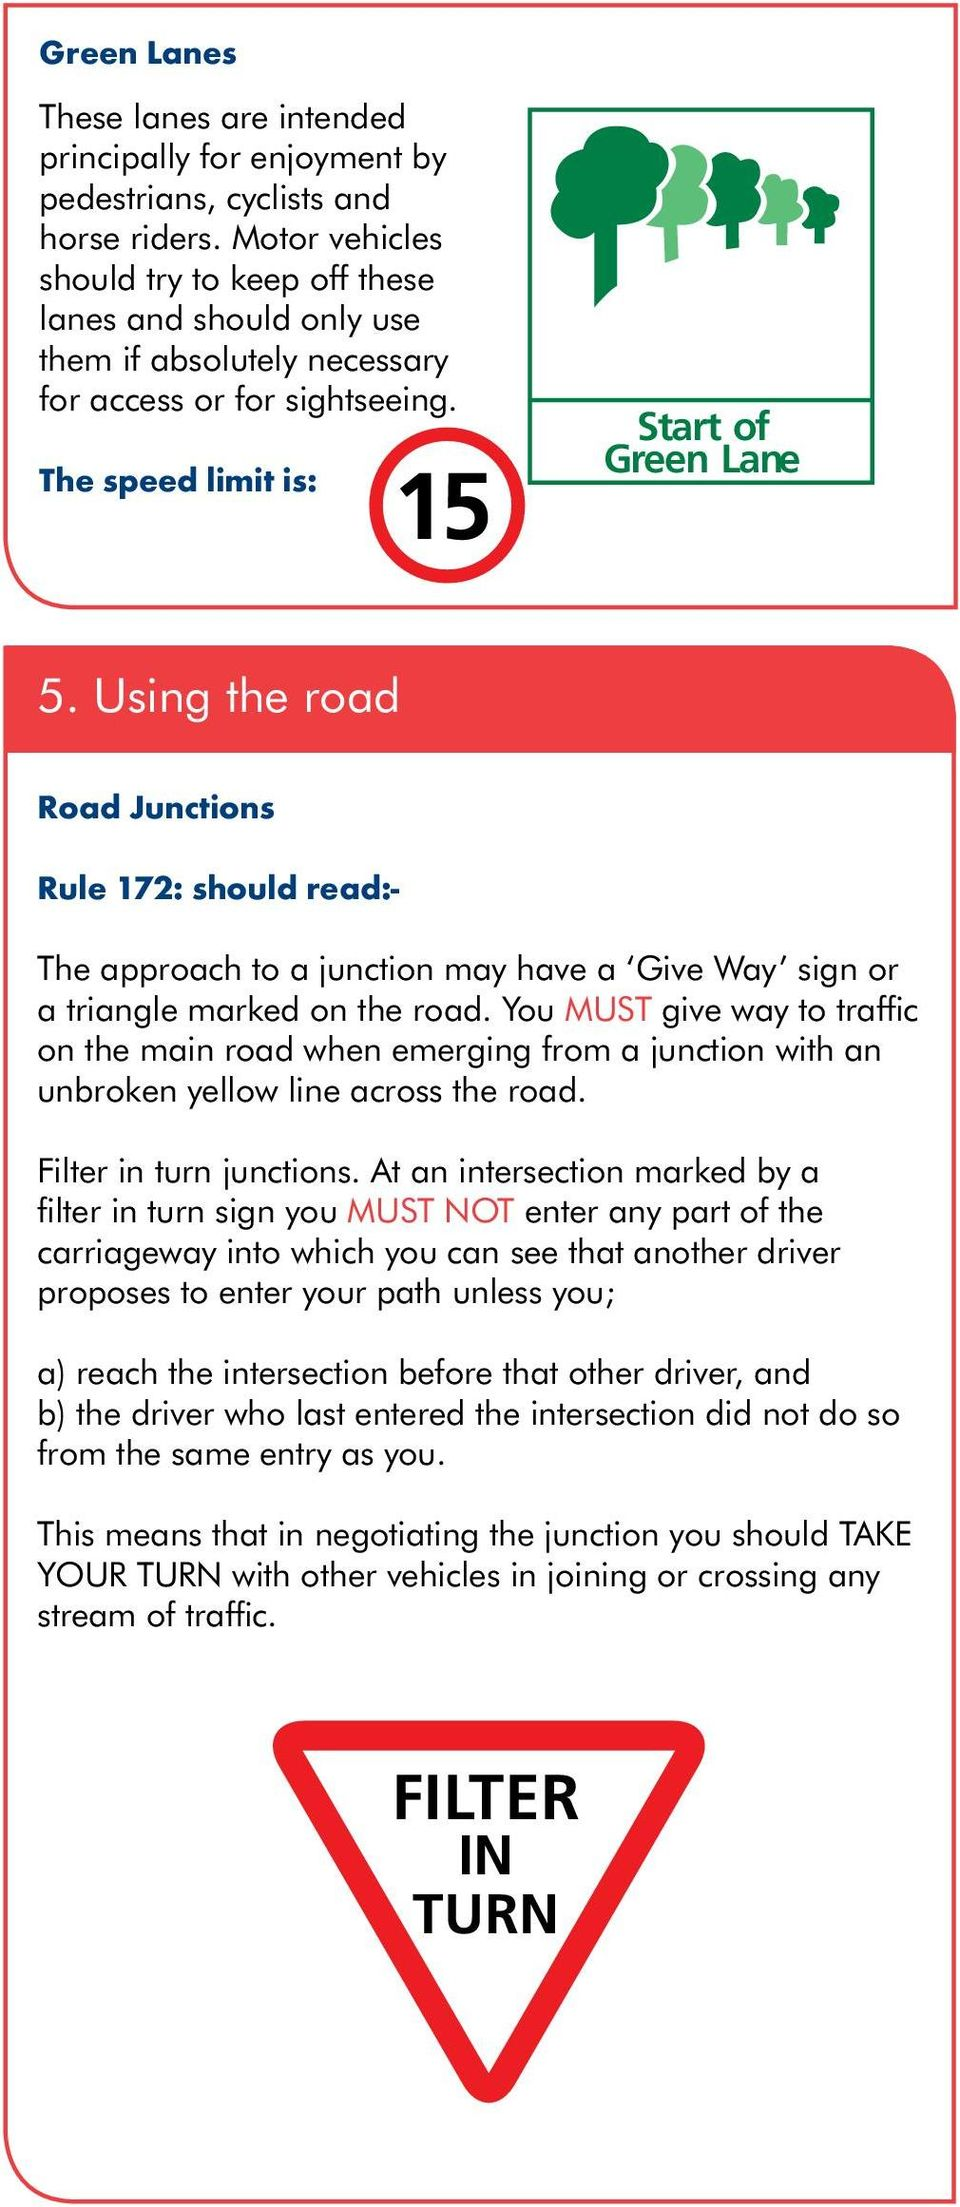 Using the road Road Junctions Rule 172: should read: The approach to a junction may have a Give Way sign or a triangle marked on the road.